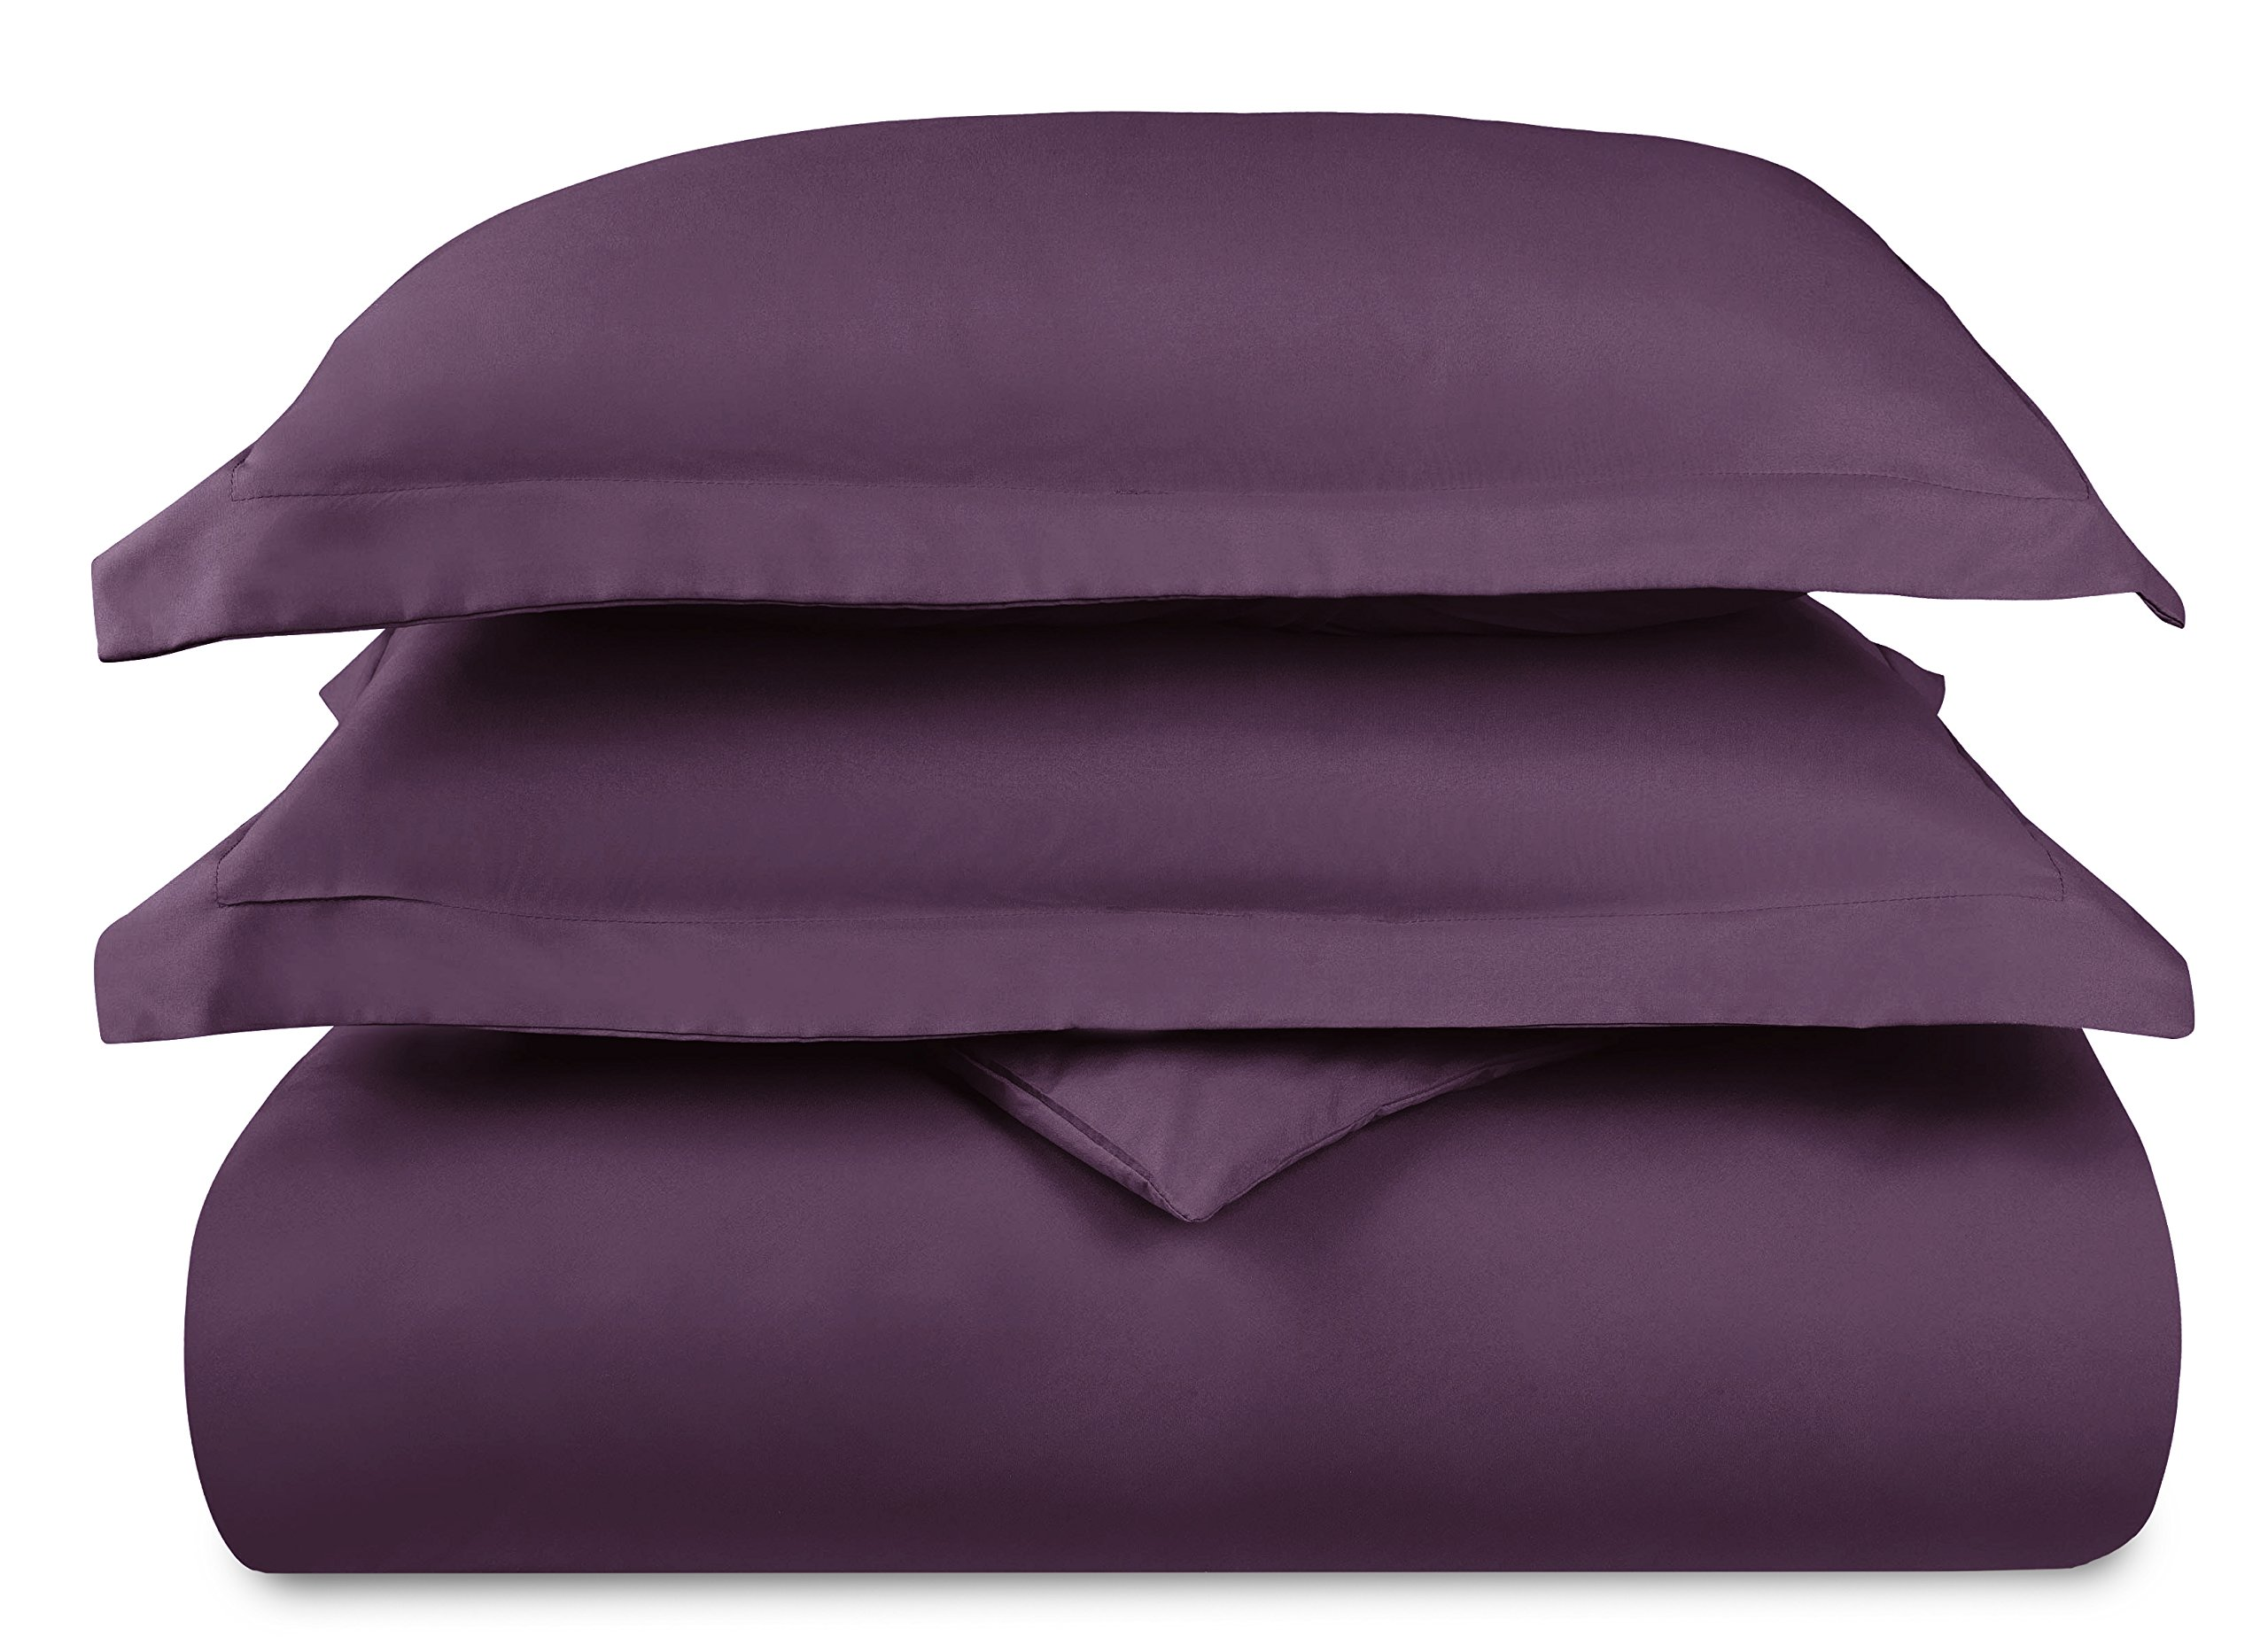 HC COLLECTION Hotel Luxury 3pc Duvet Cover Set-1500 Thread Count Egyptian Quality Ultra Silky Soft Premium Bedding Collection-King Size Eggplant by HC COLLECTION (Image #6)